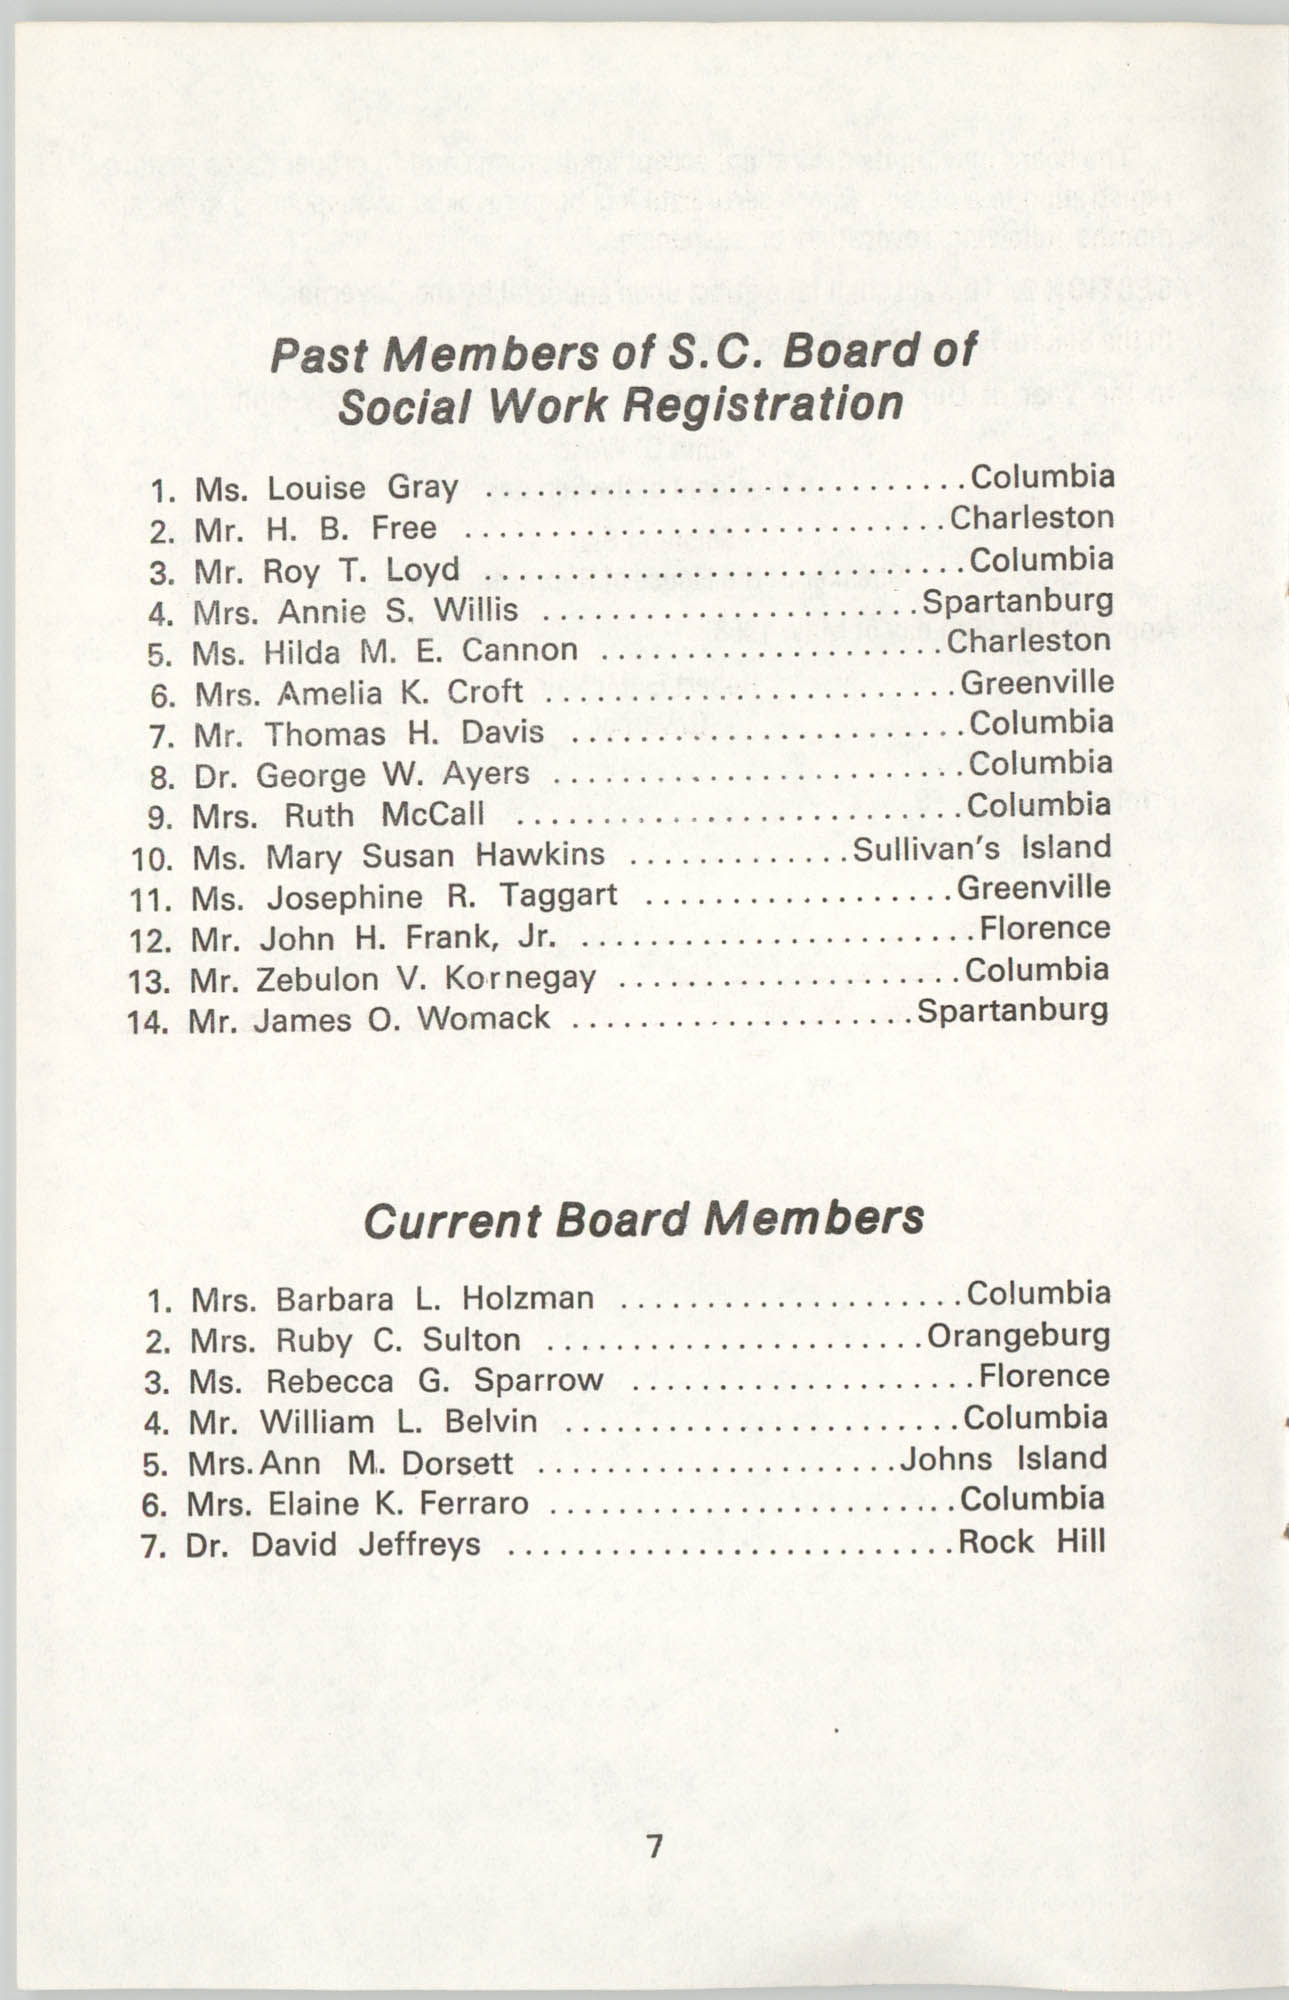 State of South Carolina Directory of Registered Social Workers, 1977, Page 7